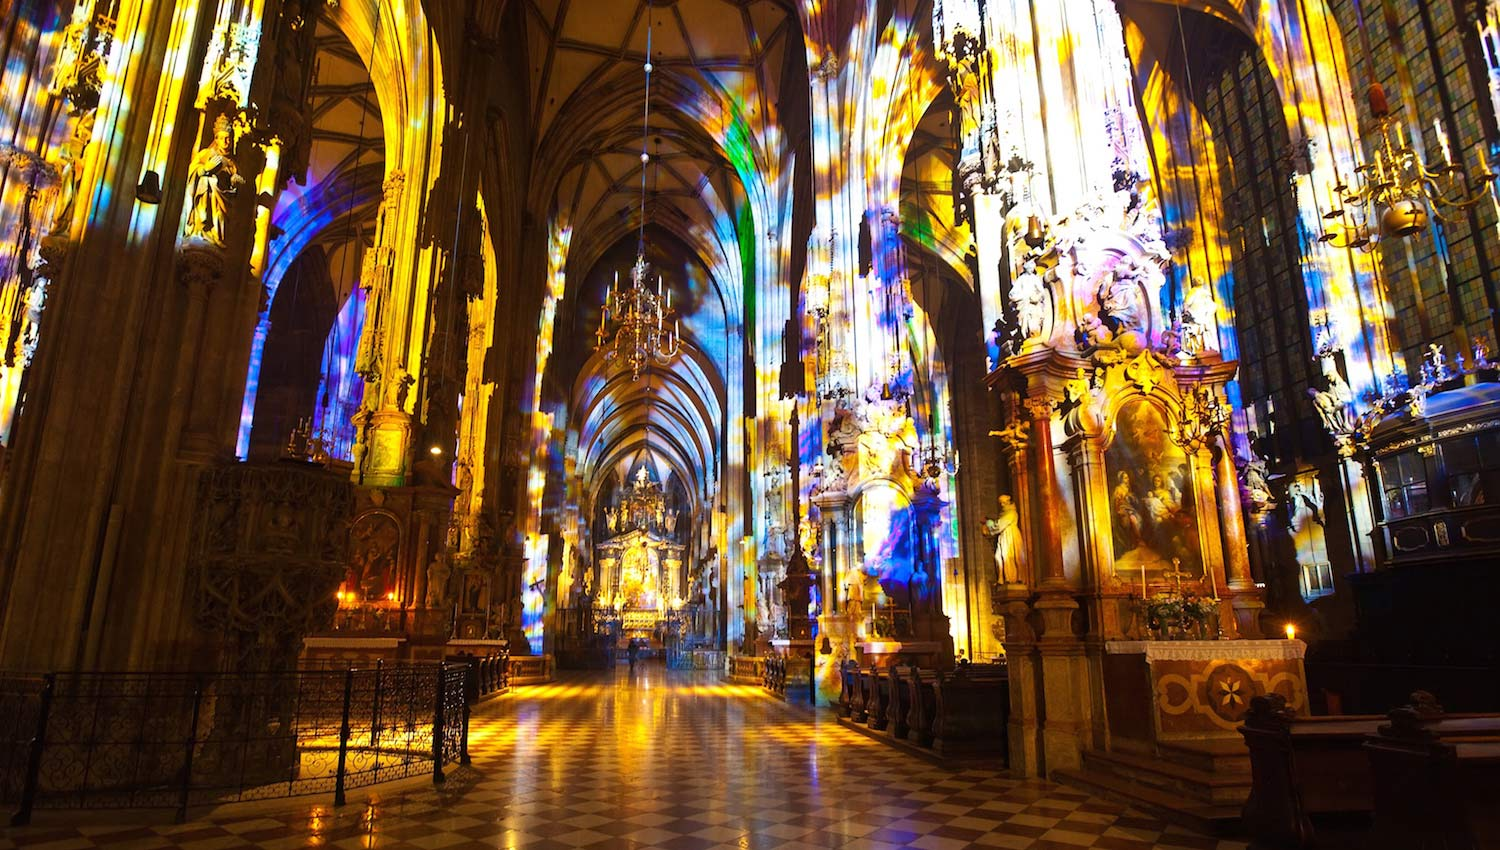 st_stephens_cathedral-vienna-interior